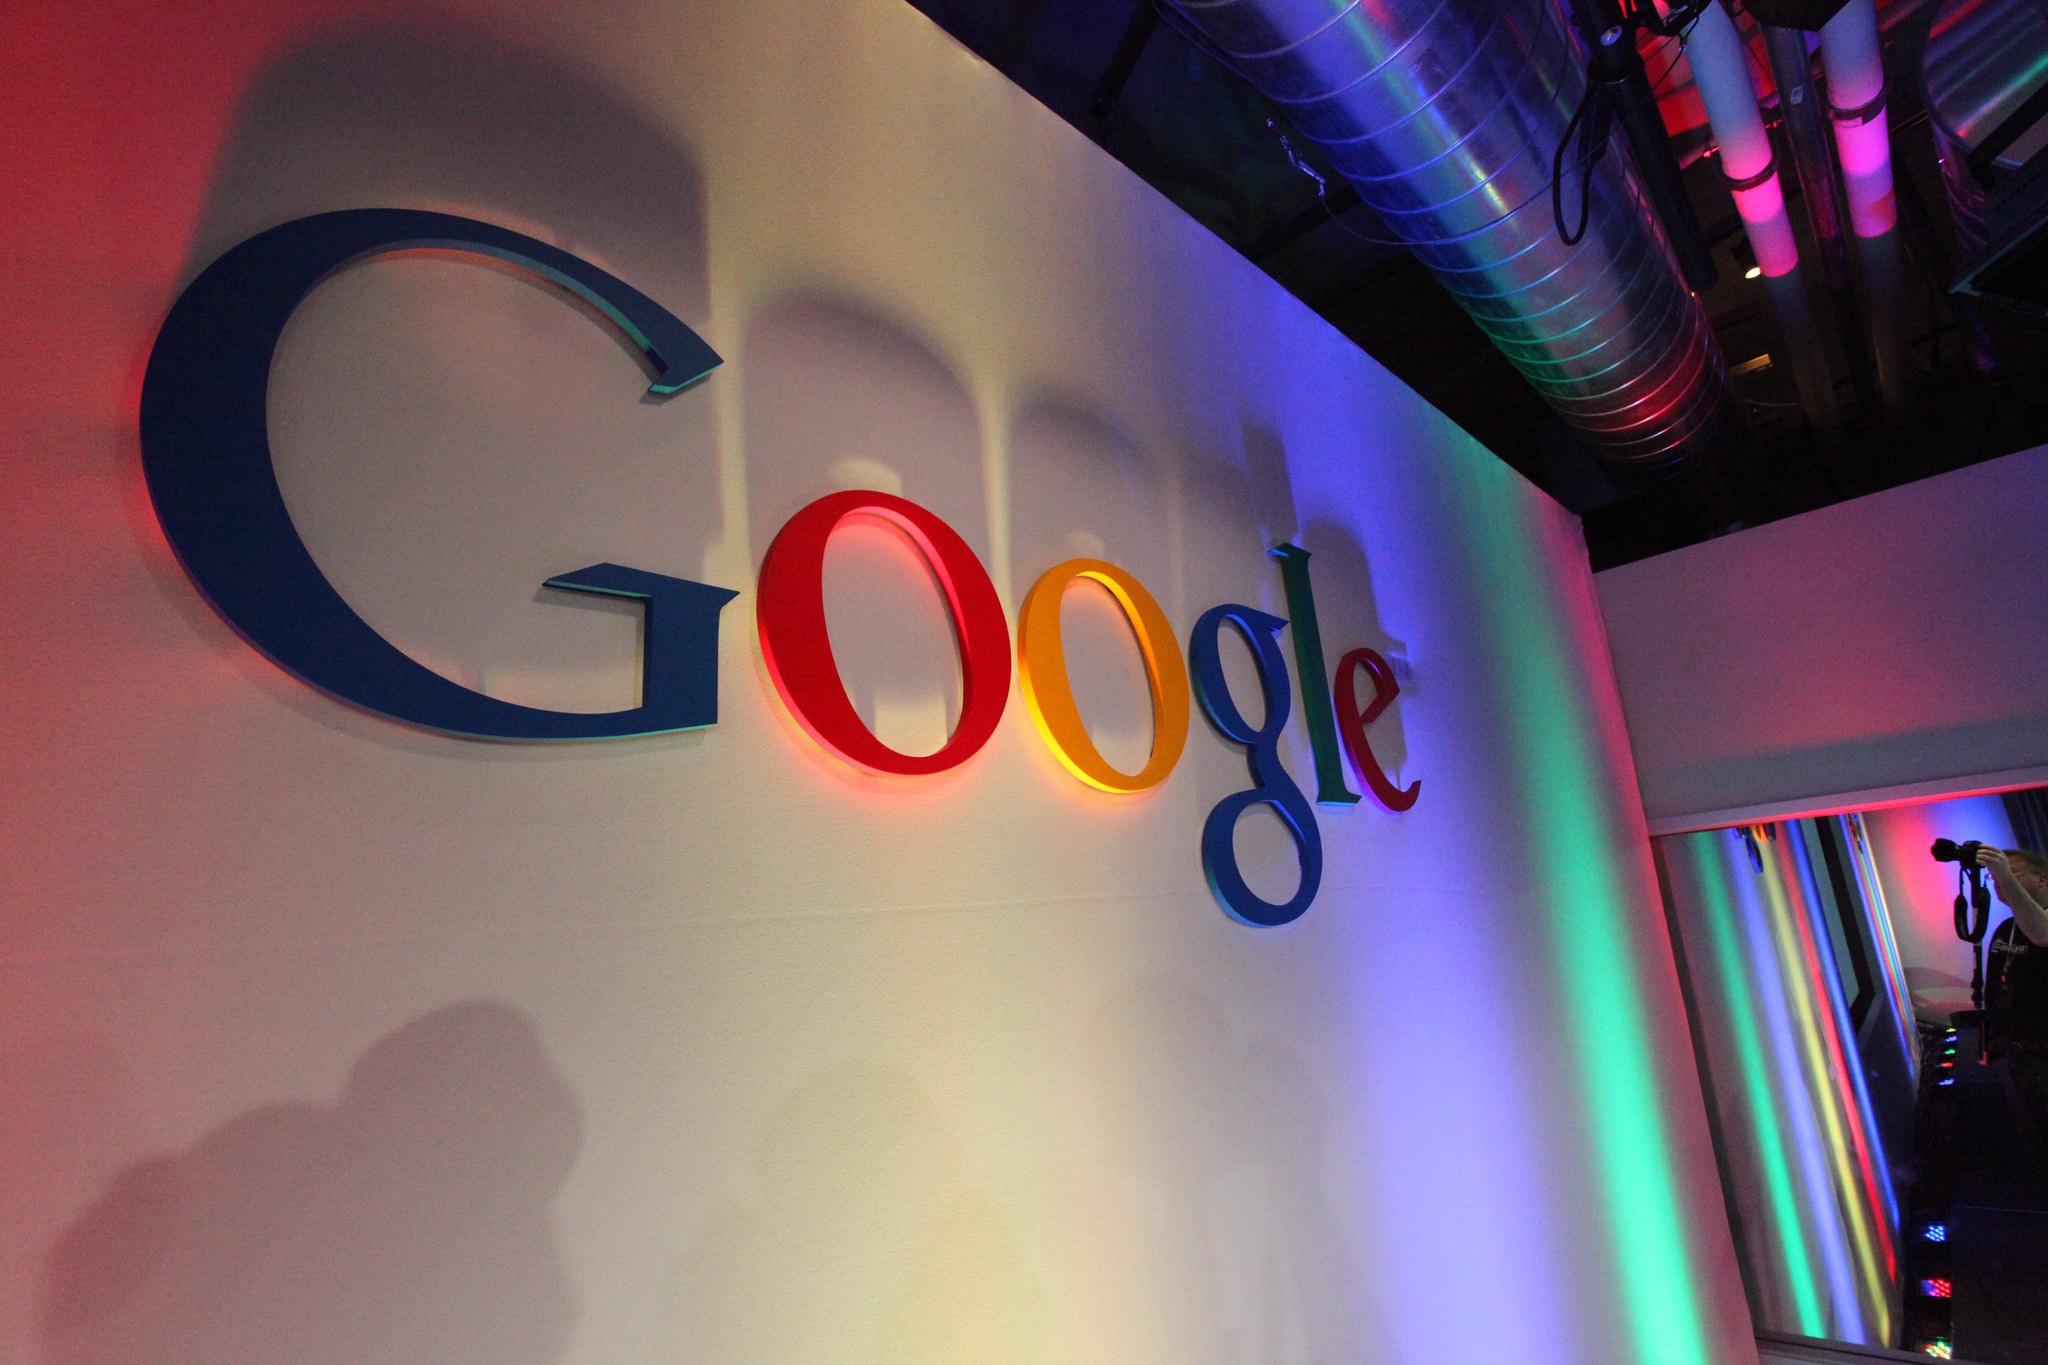 Google secretly amassing user data